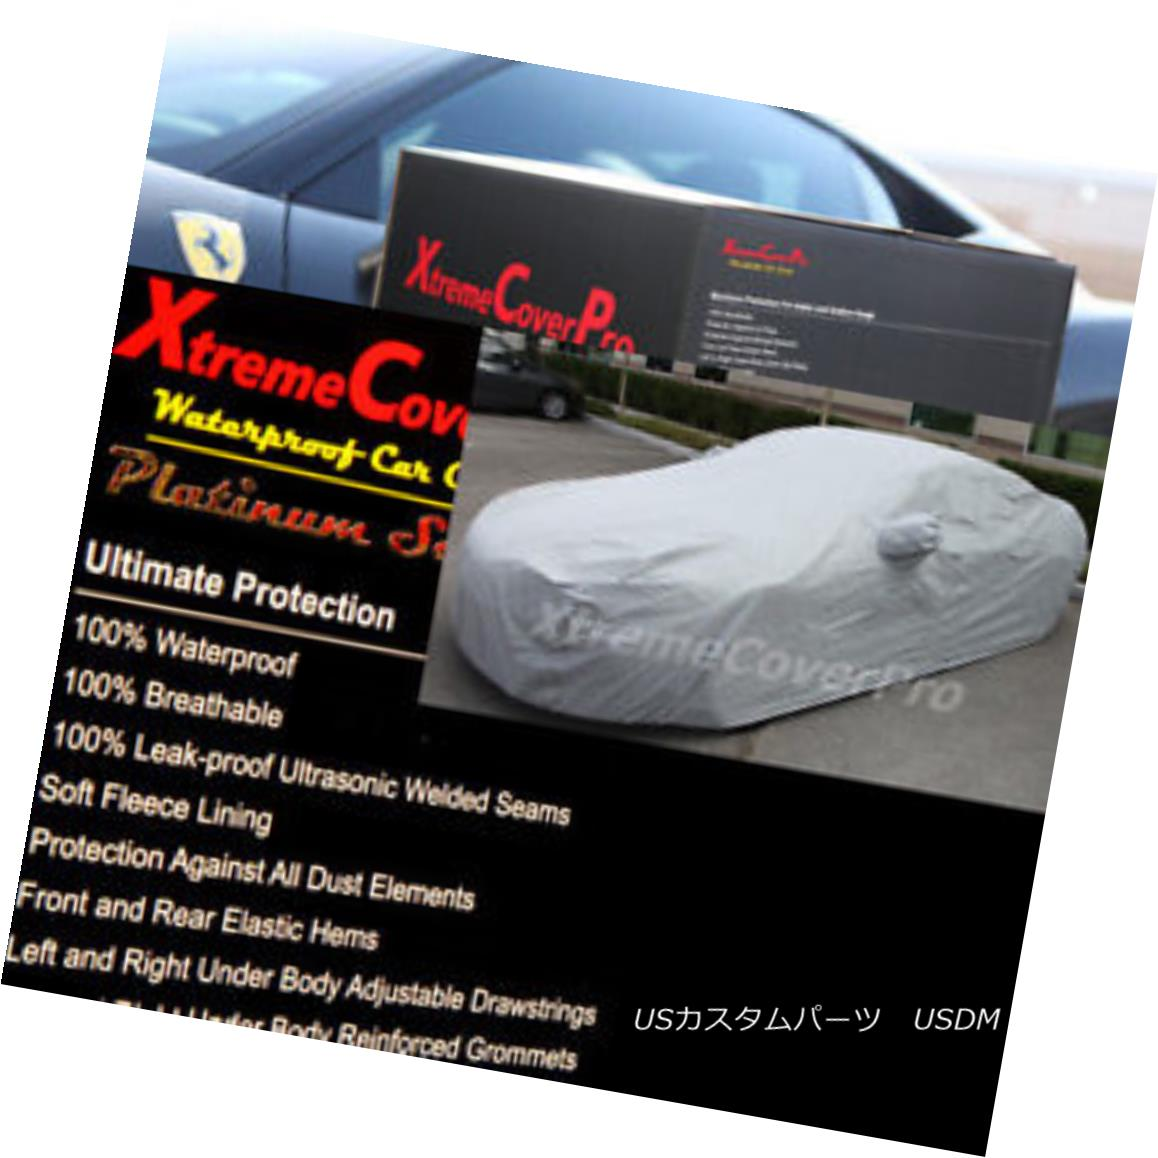 カーカバー 2015 JAGUAR XJ Waterproof Car Cover w/Mirror Pockets - Gray 2015 JAGUAR XJ防水カーカバー(ミラーポケット付) - グレー